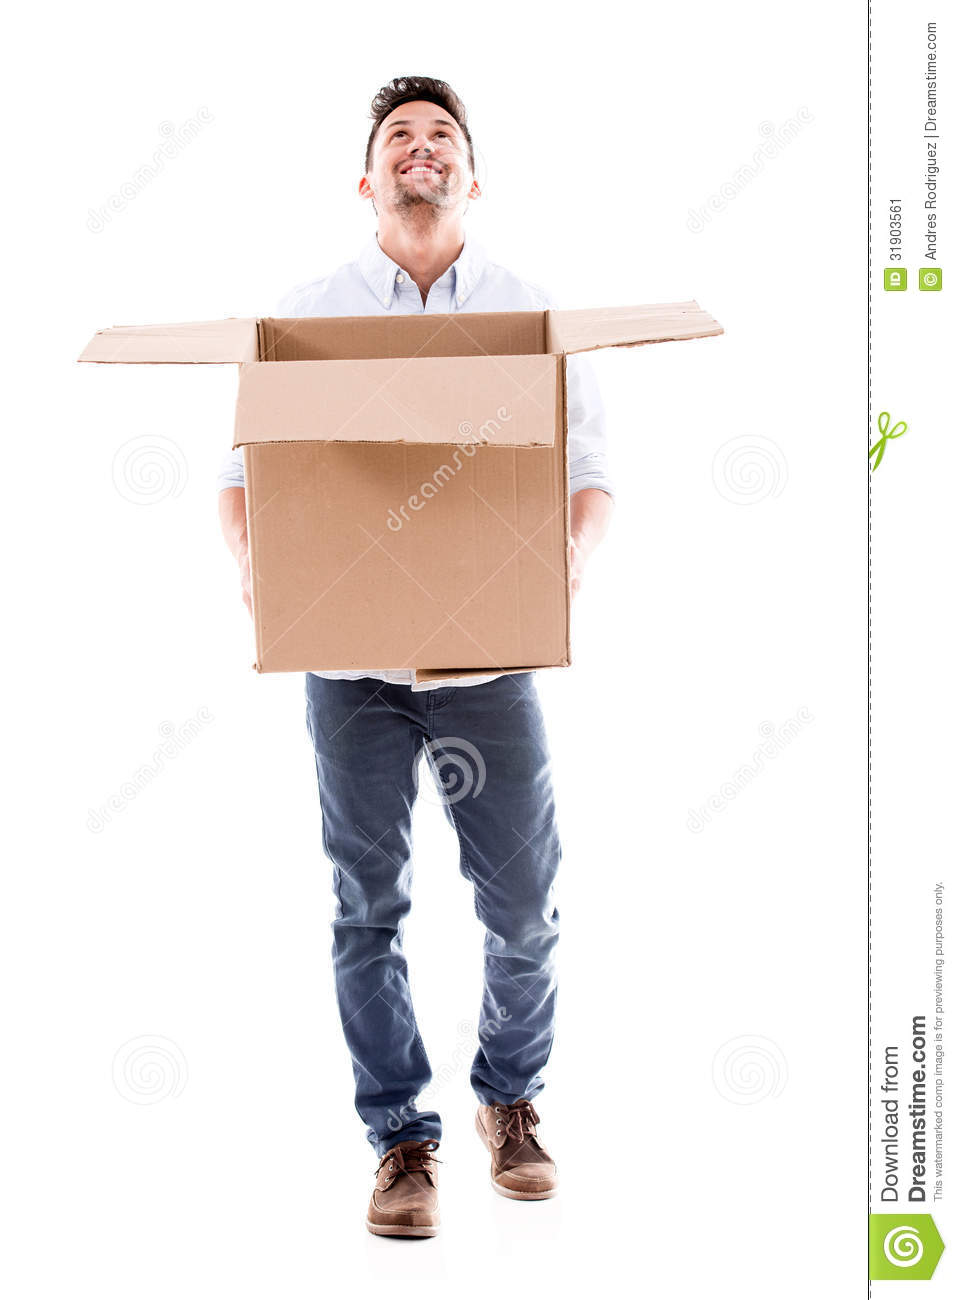 how to send something in a box